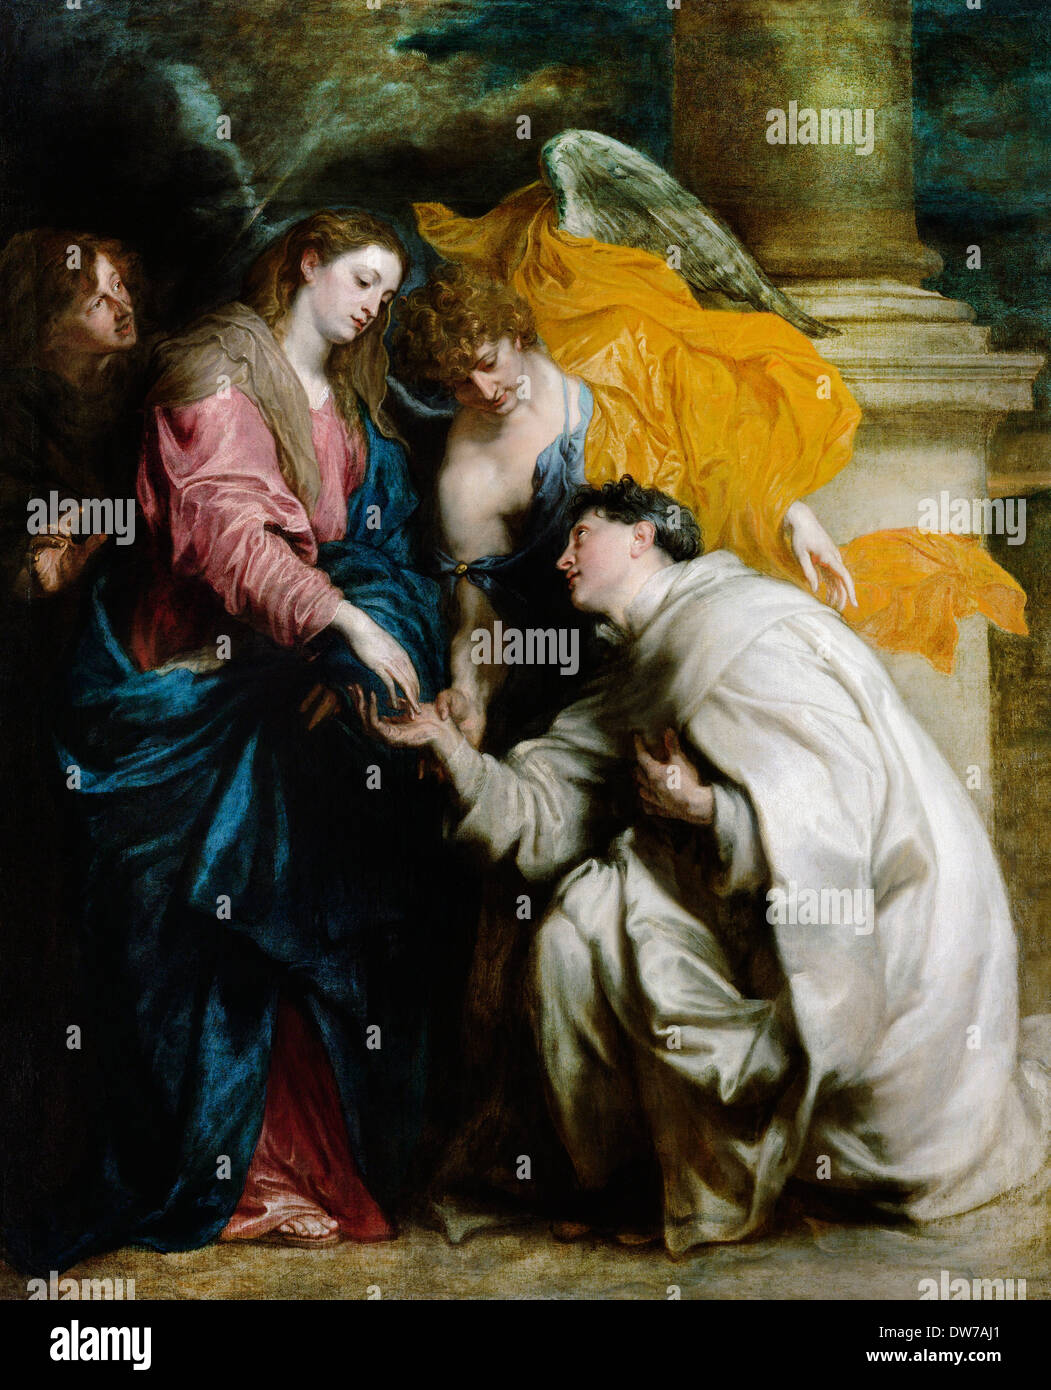 Anthony van Dyck, The Vision of the Blessed Hermann Joseph 1629-1630 Oil on canvas. Kunsthistorisches Museum, Vienna, - Stock Image